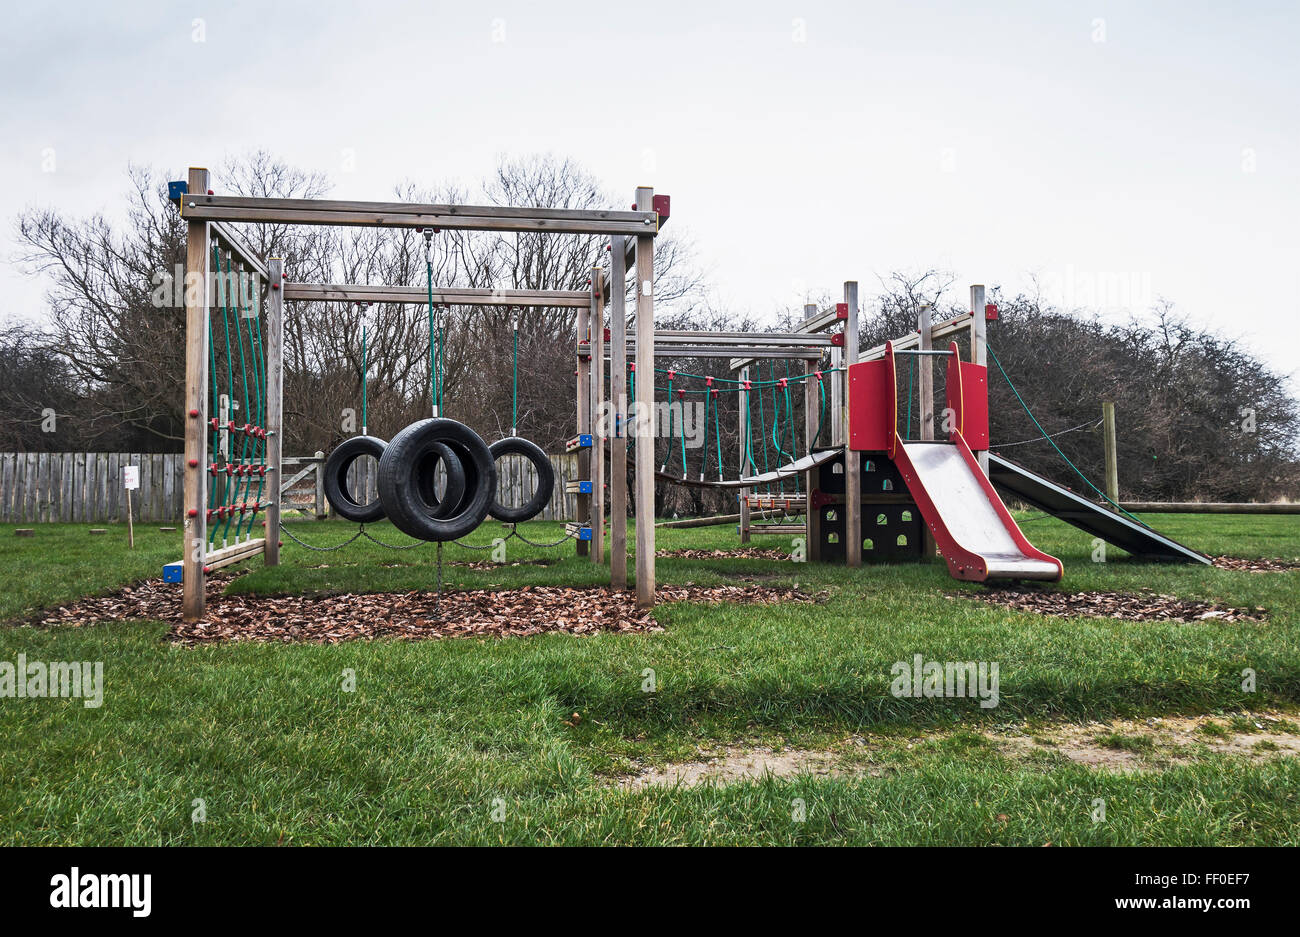 Motor vehicle tyres used as swings in children's playground. - Stock Image